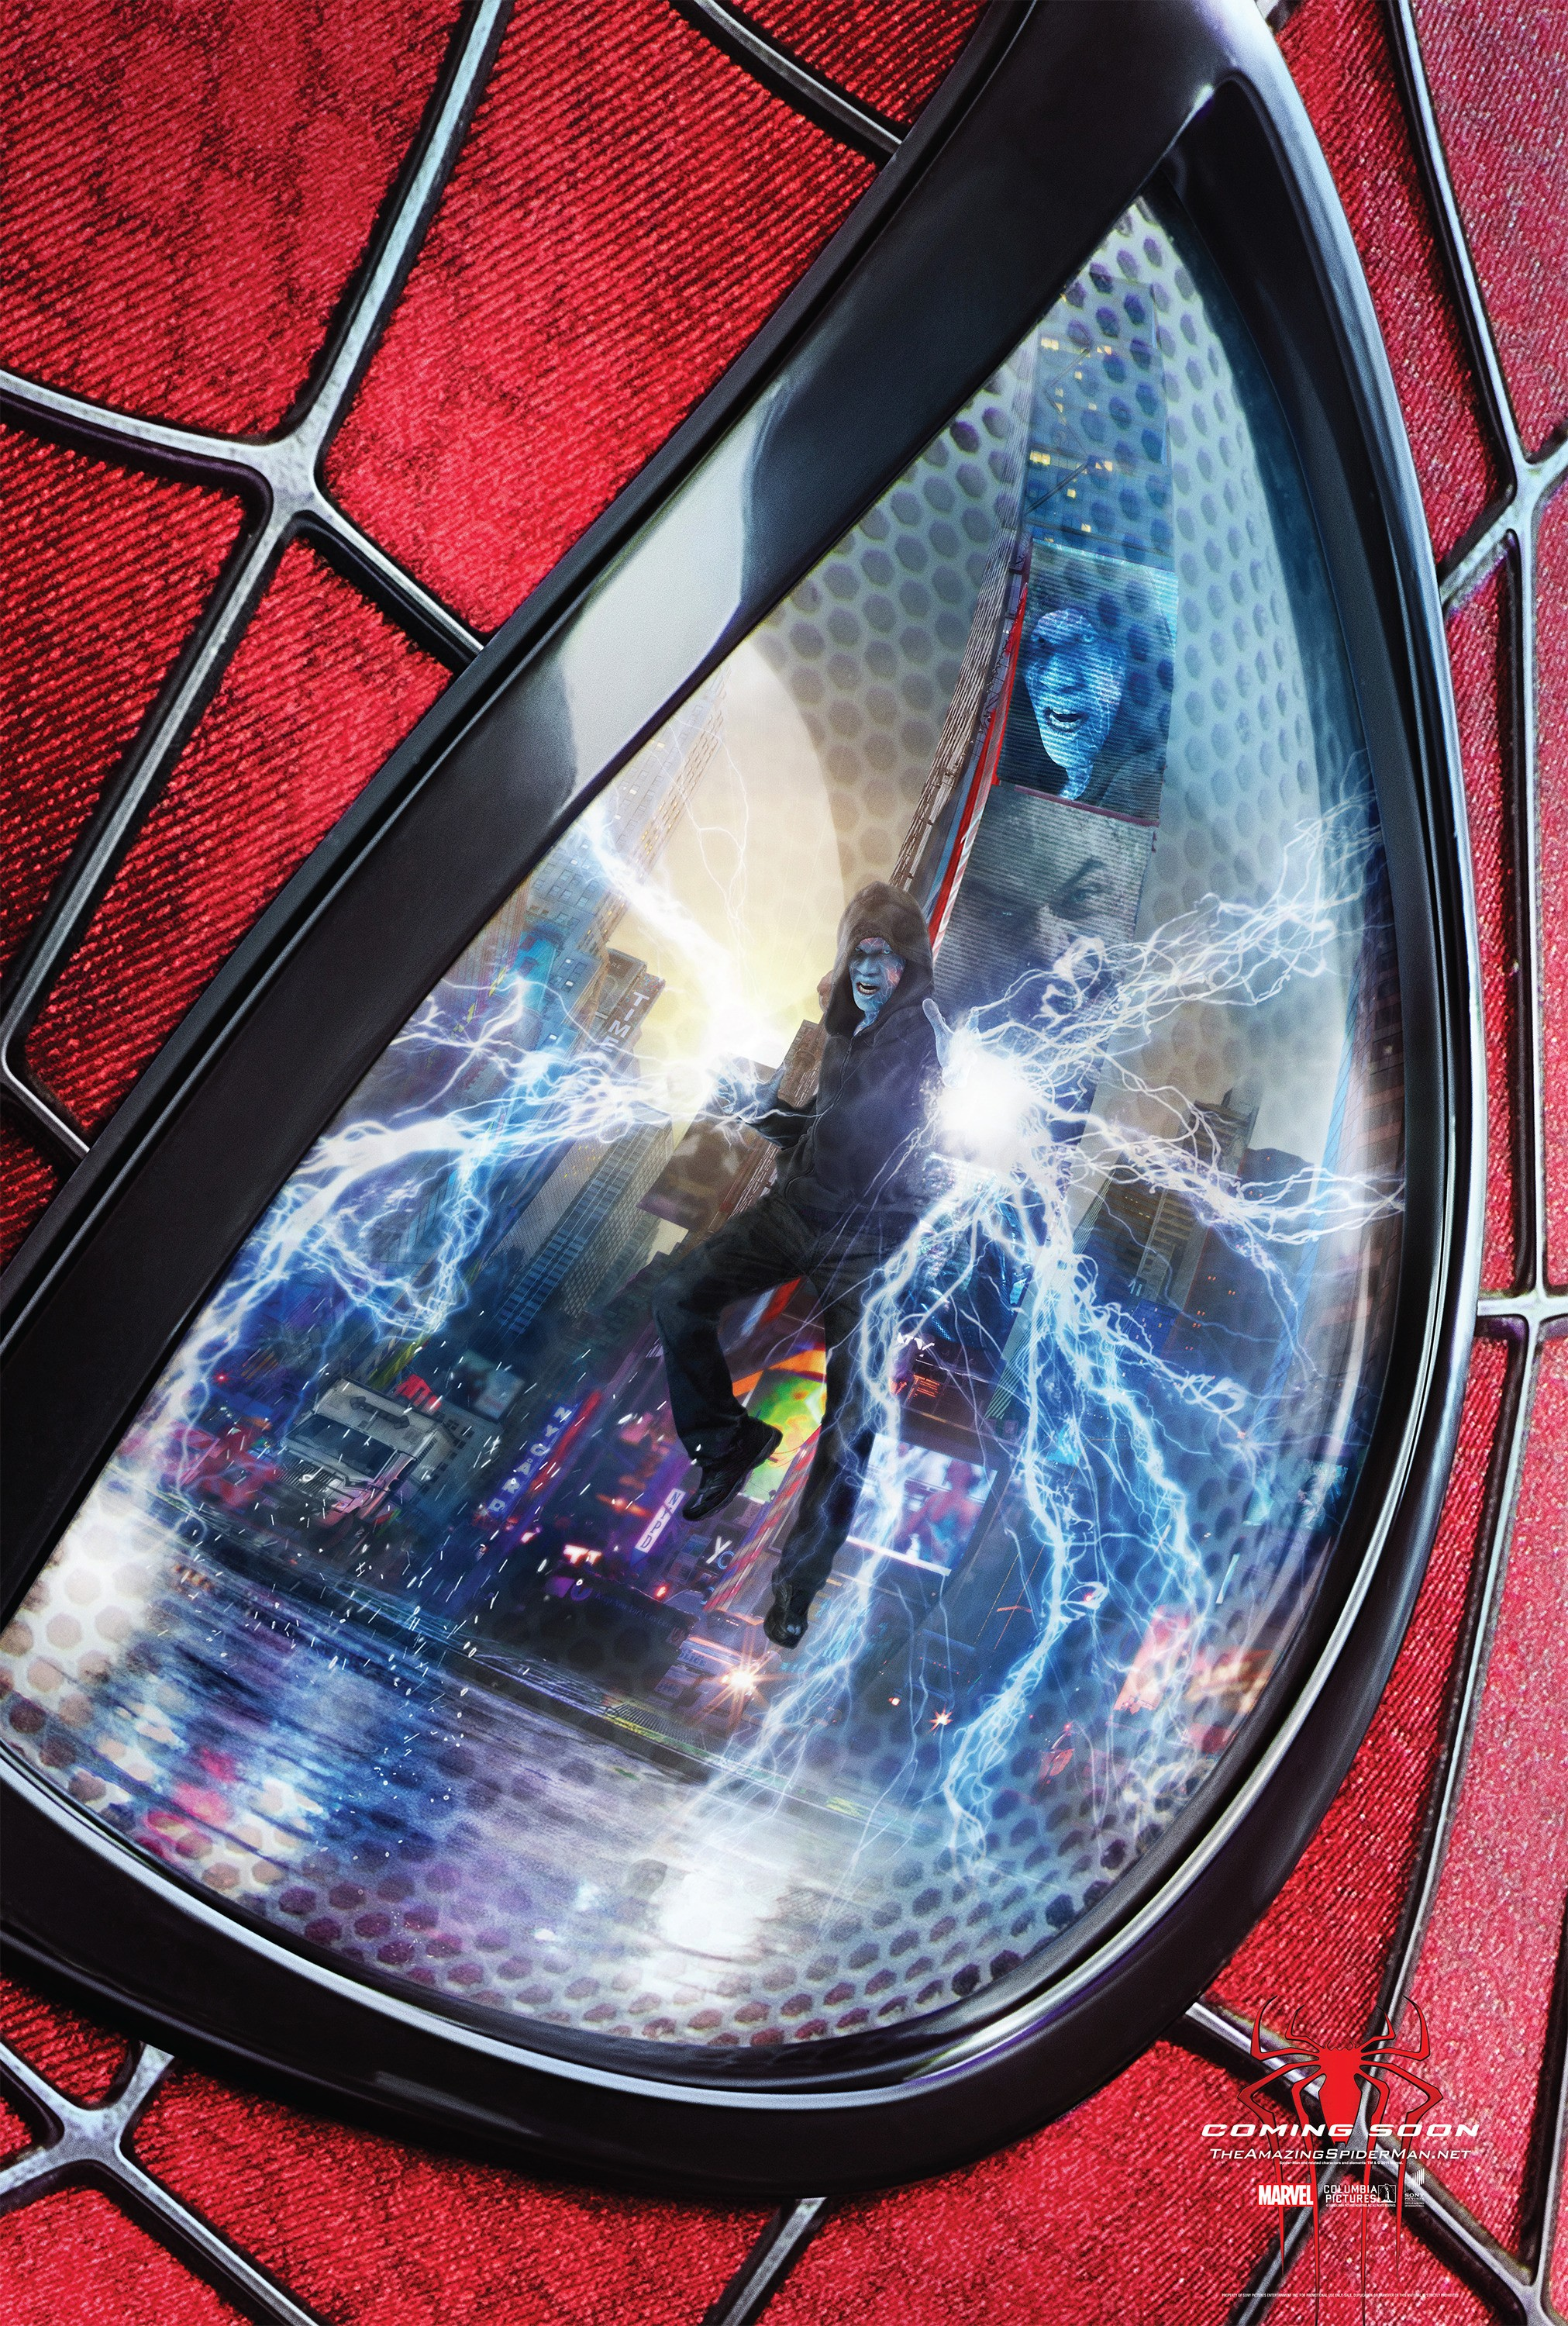 The Amazing Spider-Man 2-Official Poster Banner PROMO XLG-08JANEIRO2014-02